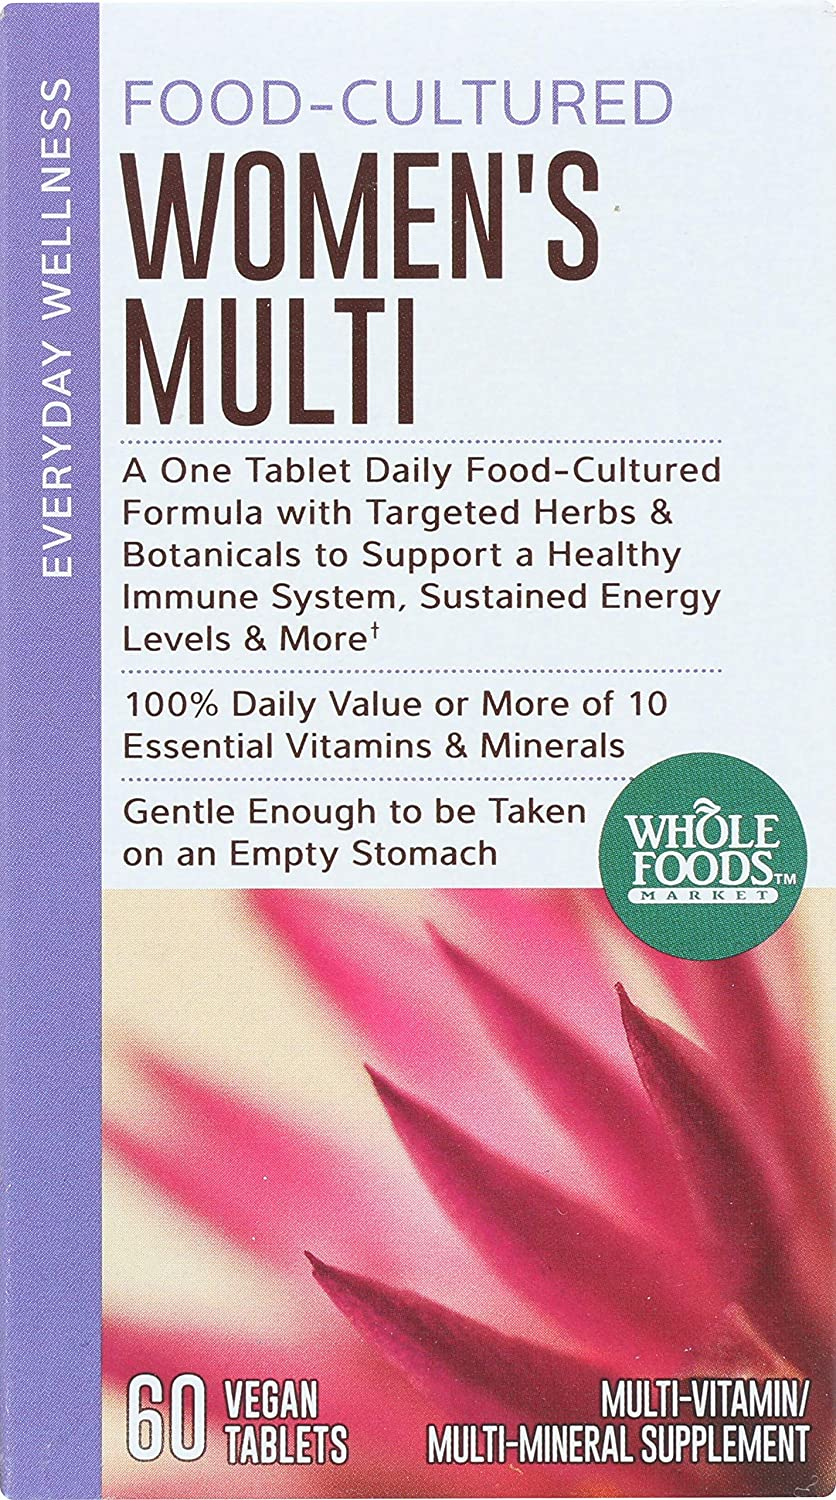 Whole Foods Market, Food-Cultured Women s Multi, 60 ct